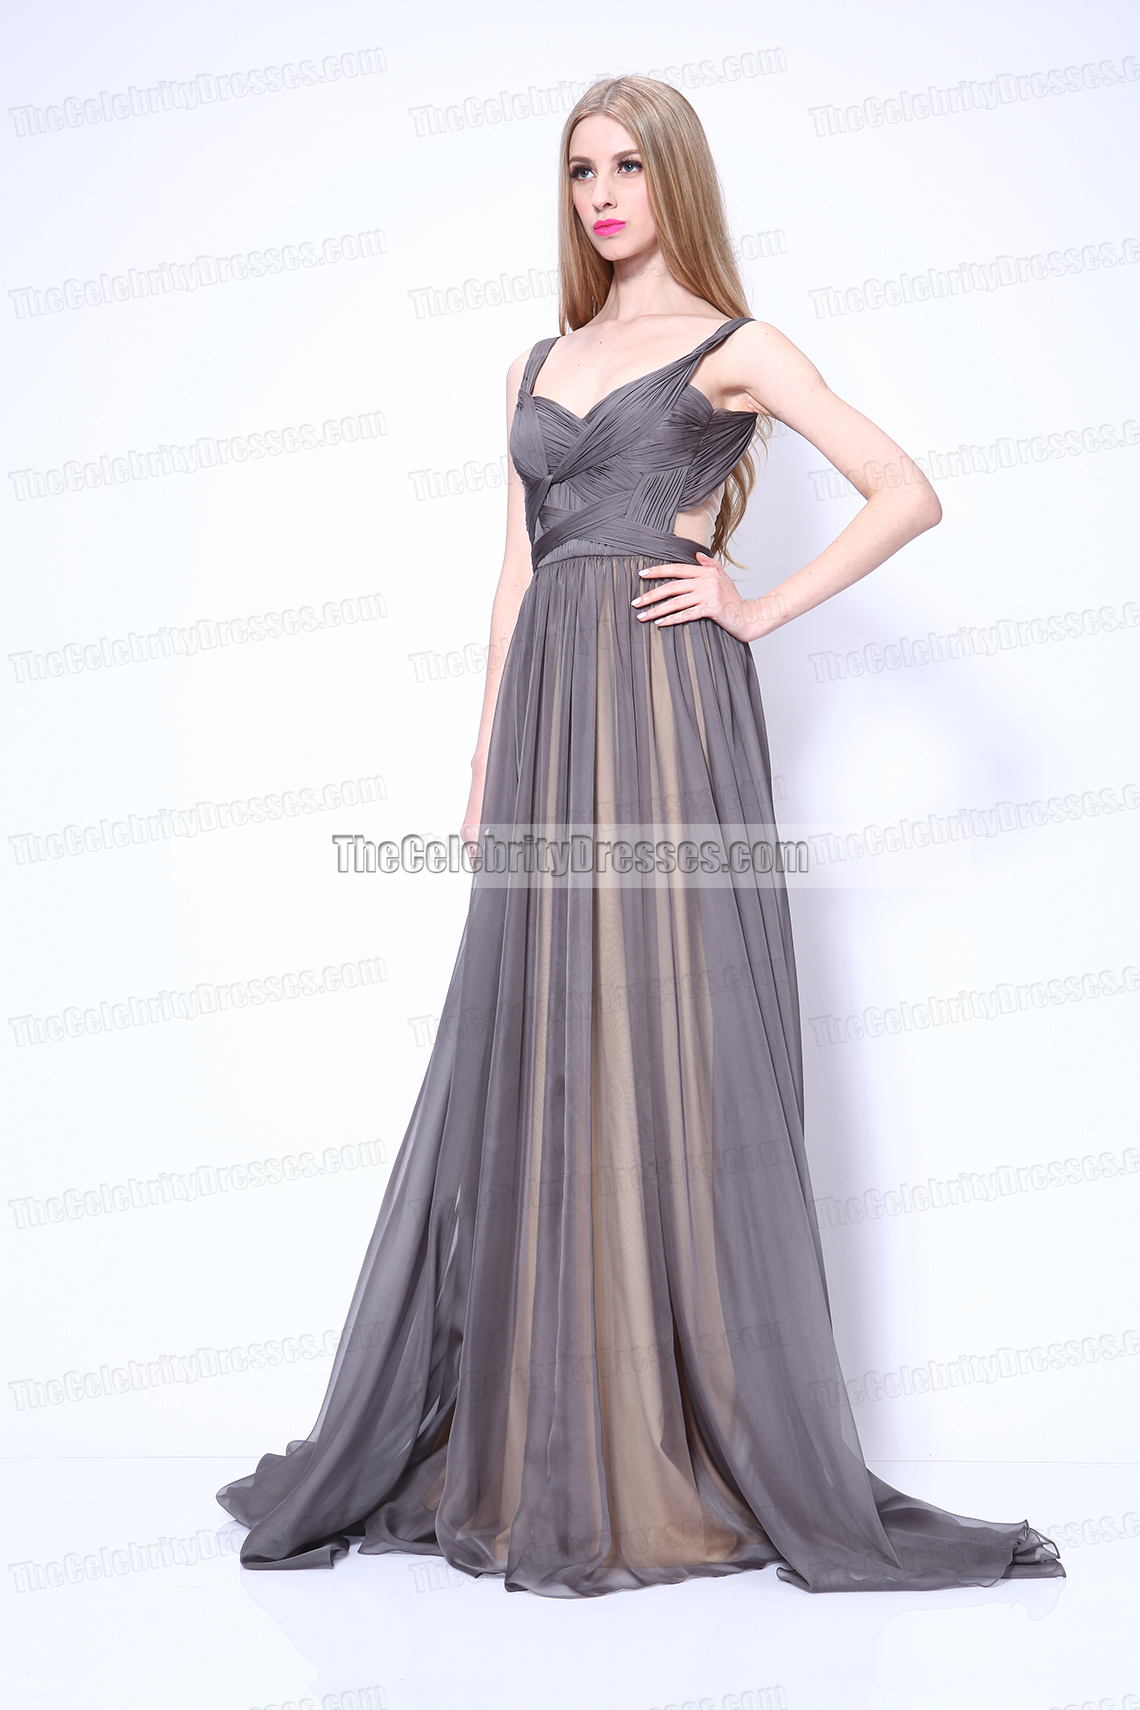 Katherine Heigl Prom Gown Formal Dress Paris \'One For The Money ...